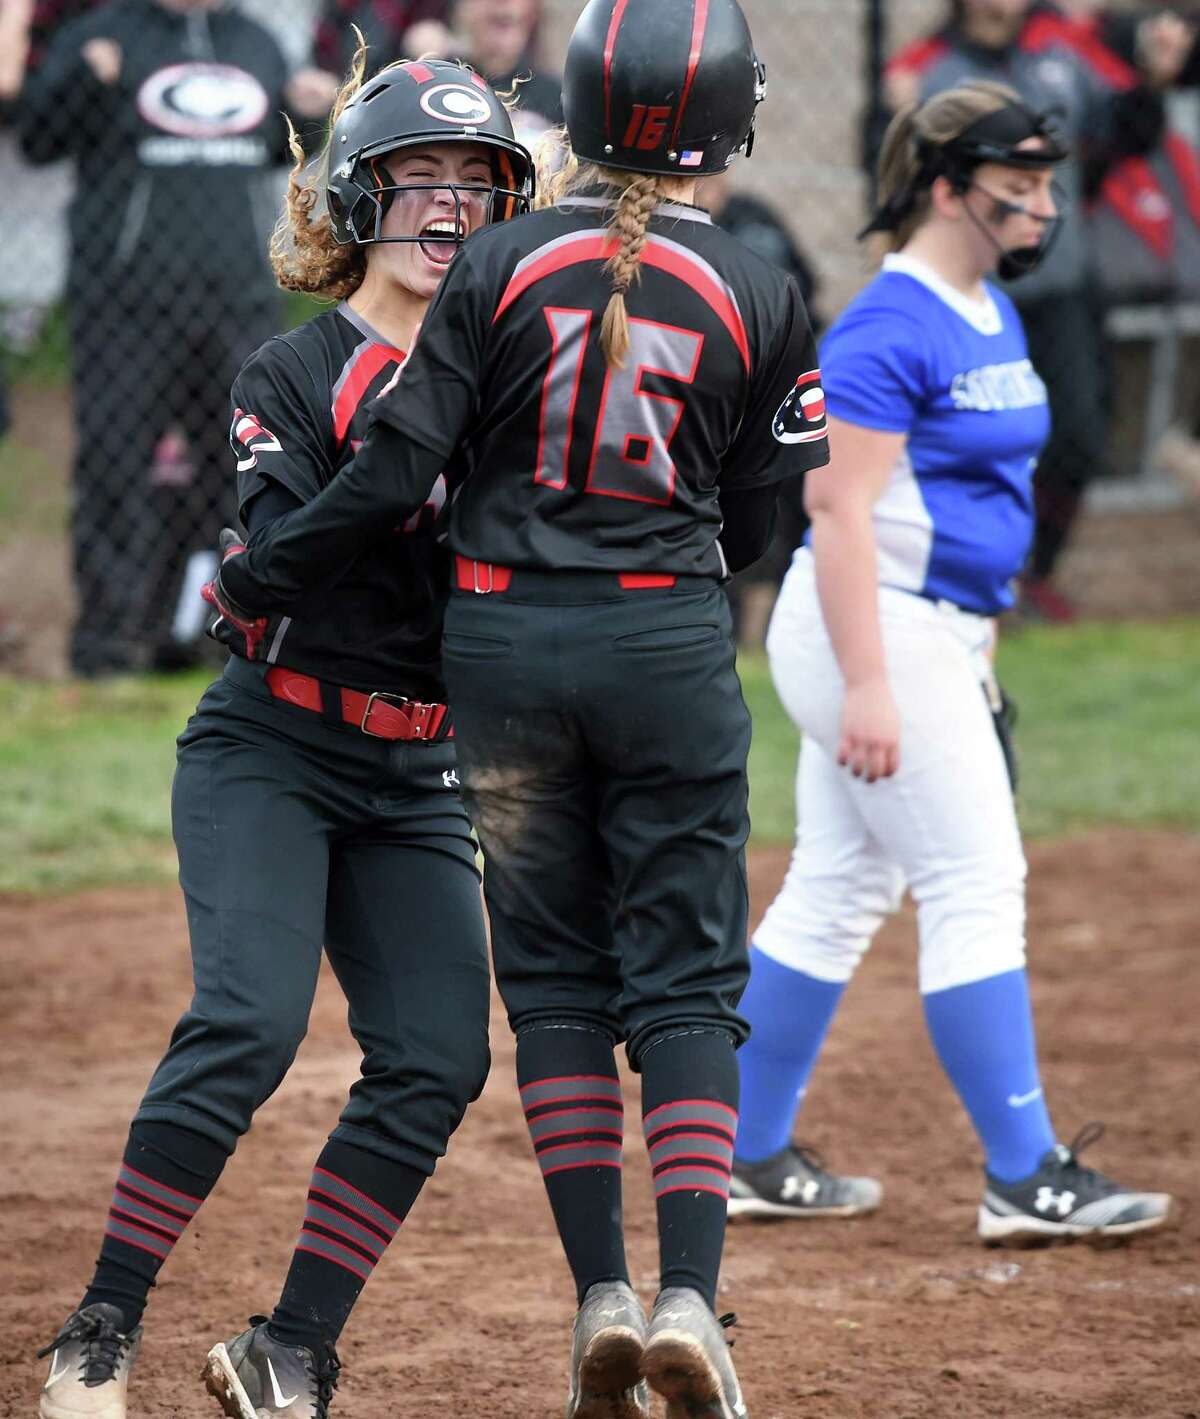 Cheshire's Sophia Vagts, left, and Sarah Capute celebrate after scoring in the seventh inning against Southington to tie the game at 3 on Tuesday.